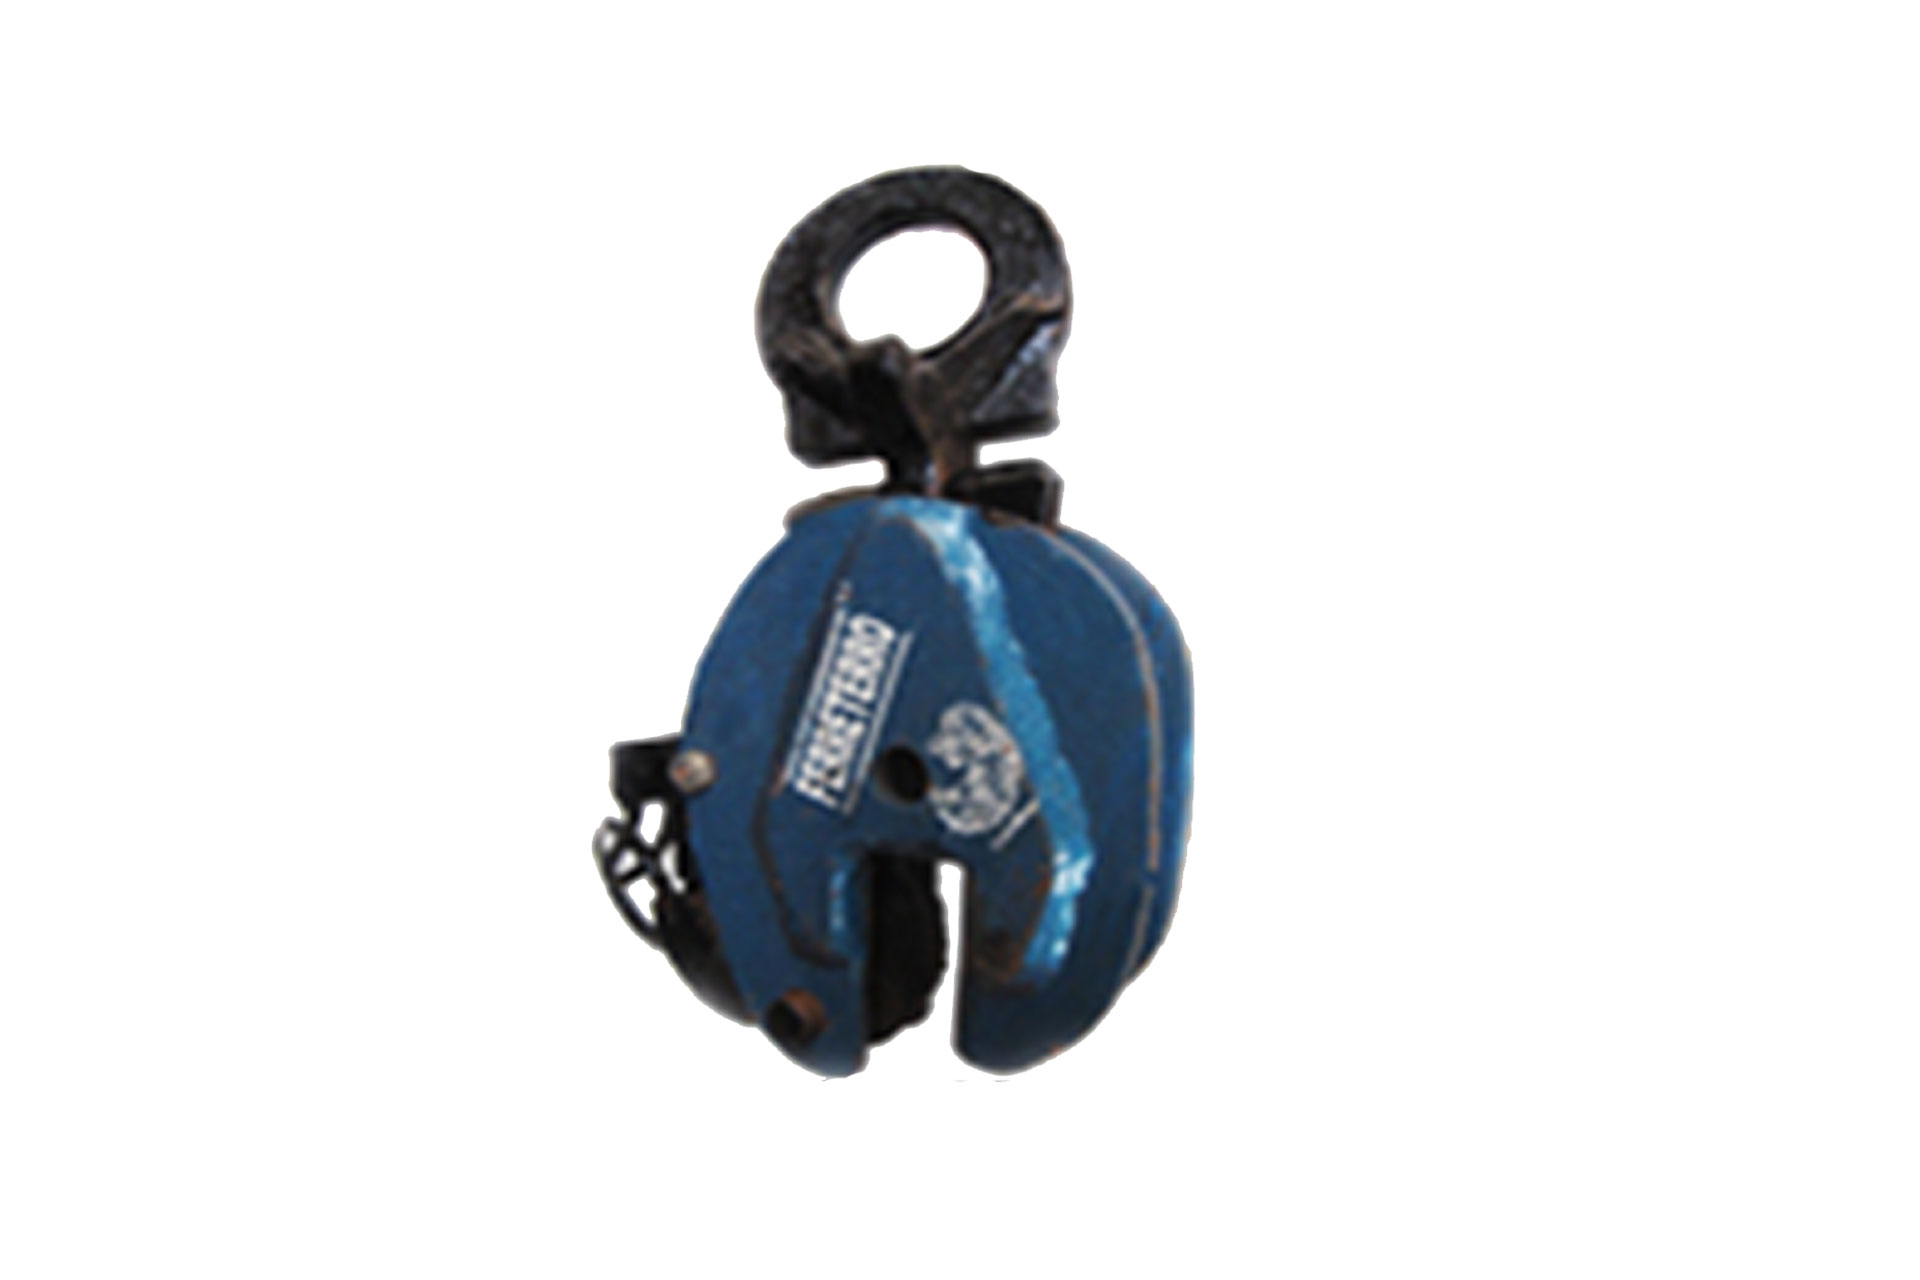 Vertical Plate Lifting Clamp with remote release & swivel handle